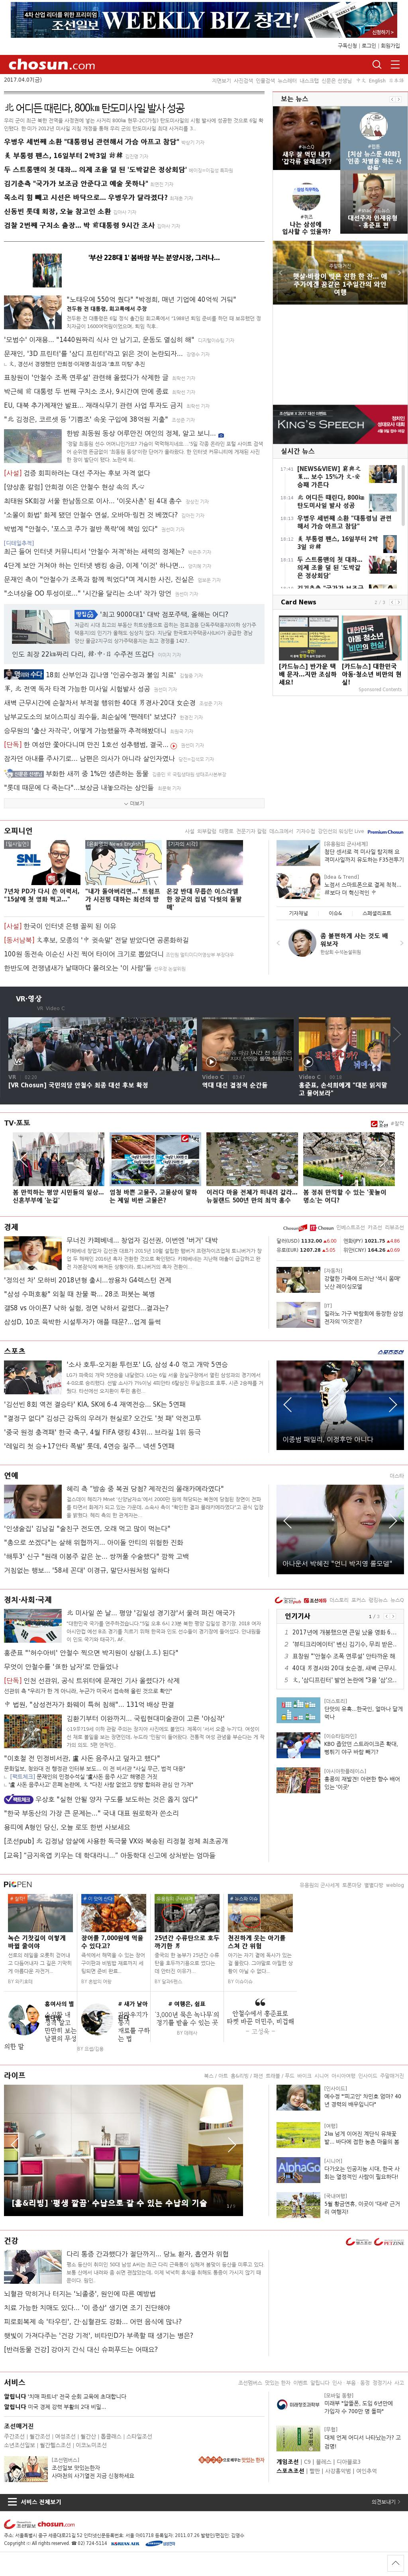 chosun.com at Thursday April 6, 2017, 7:06 p.m. UTC